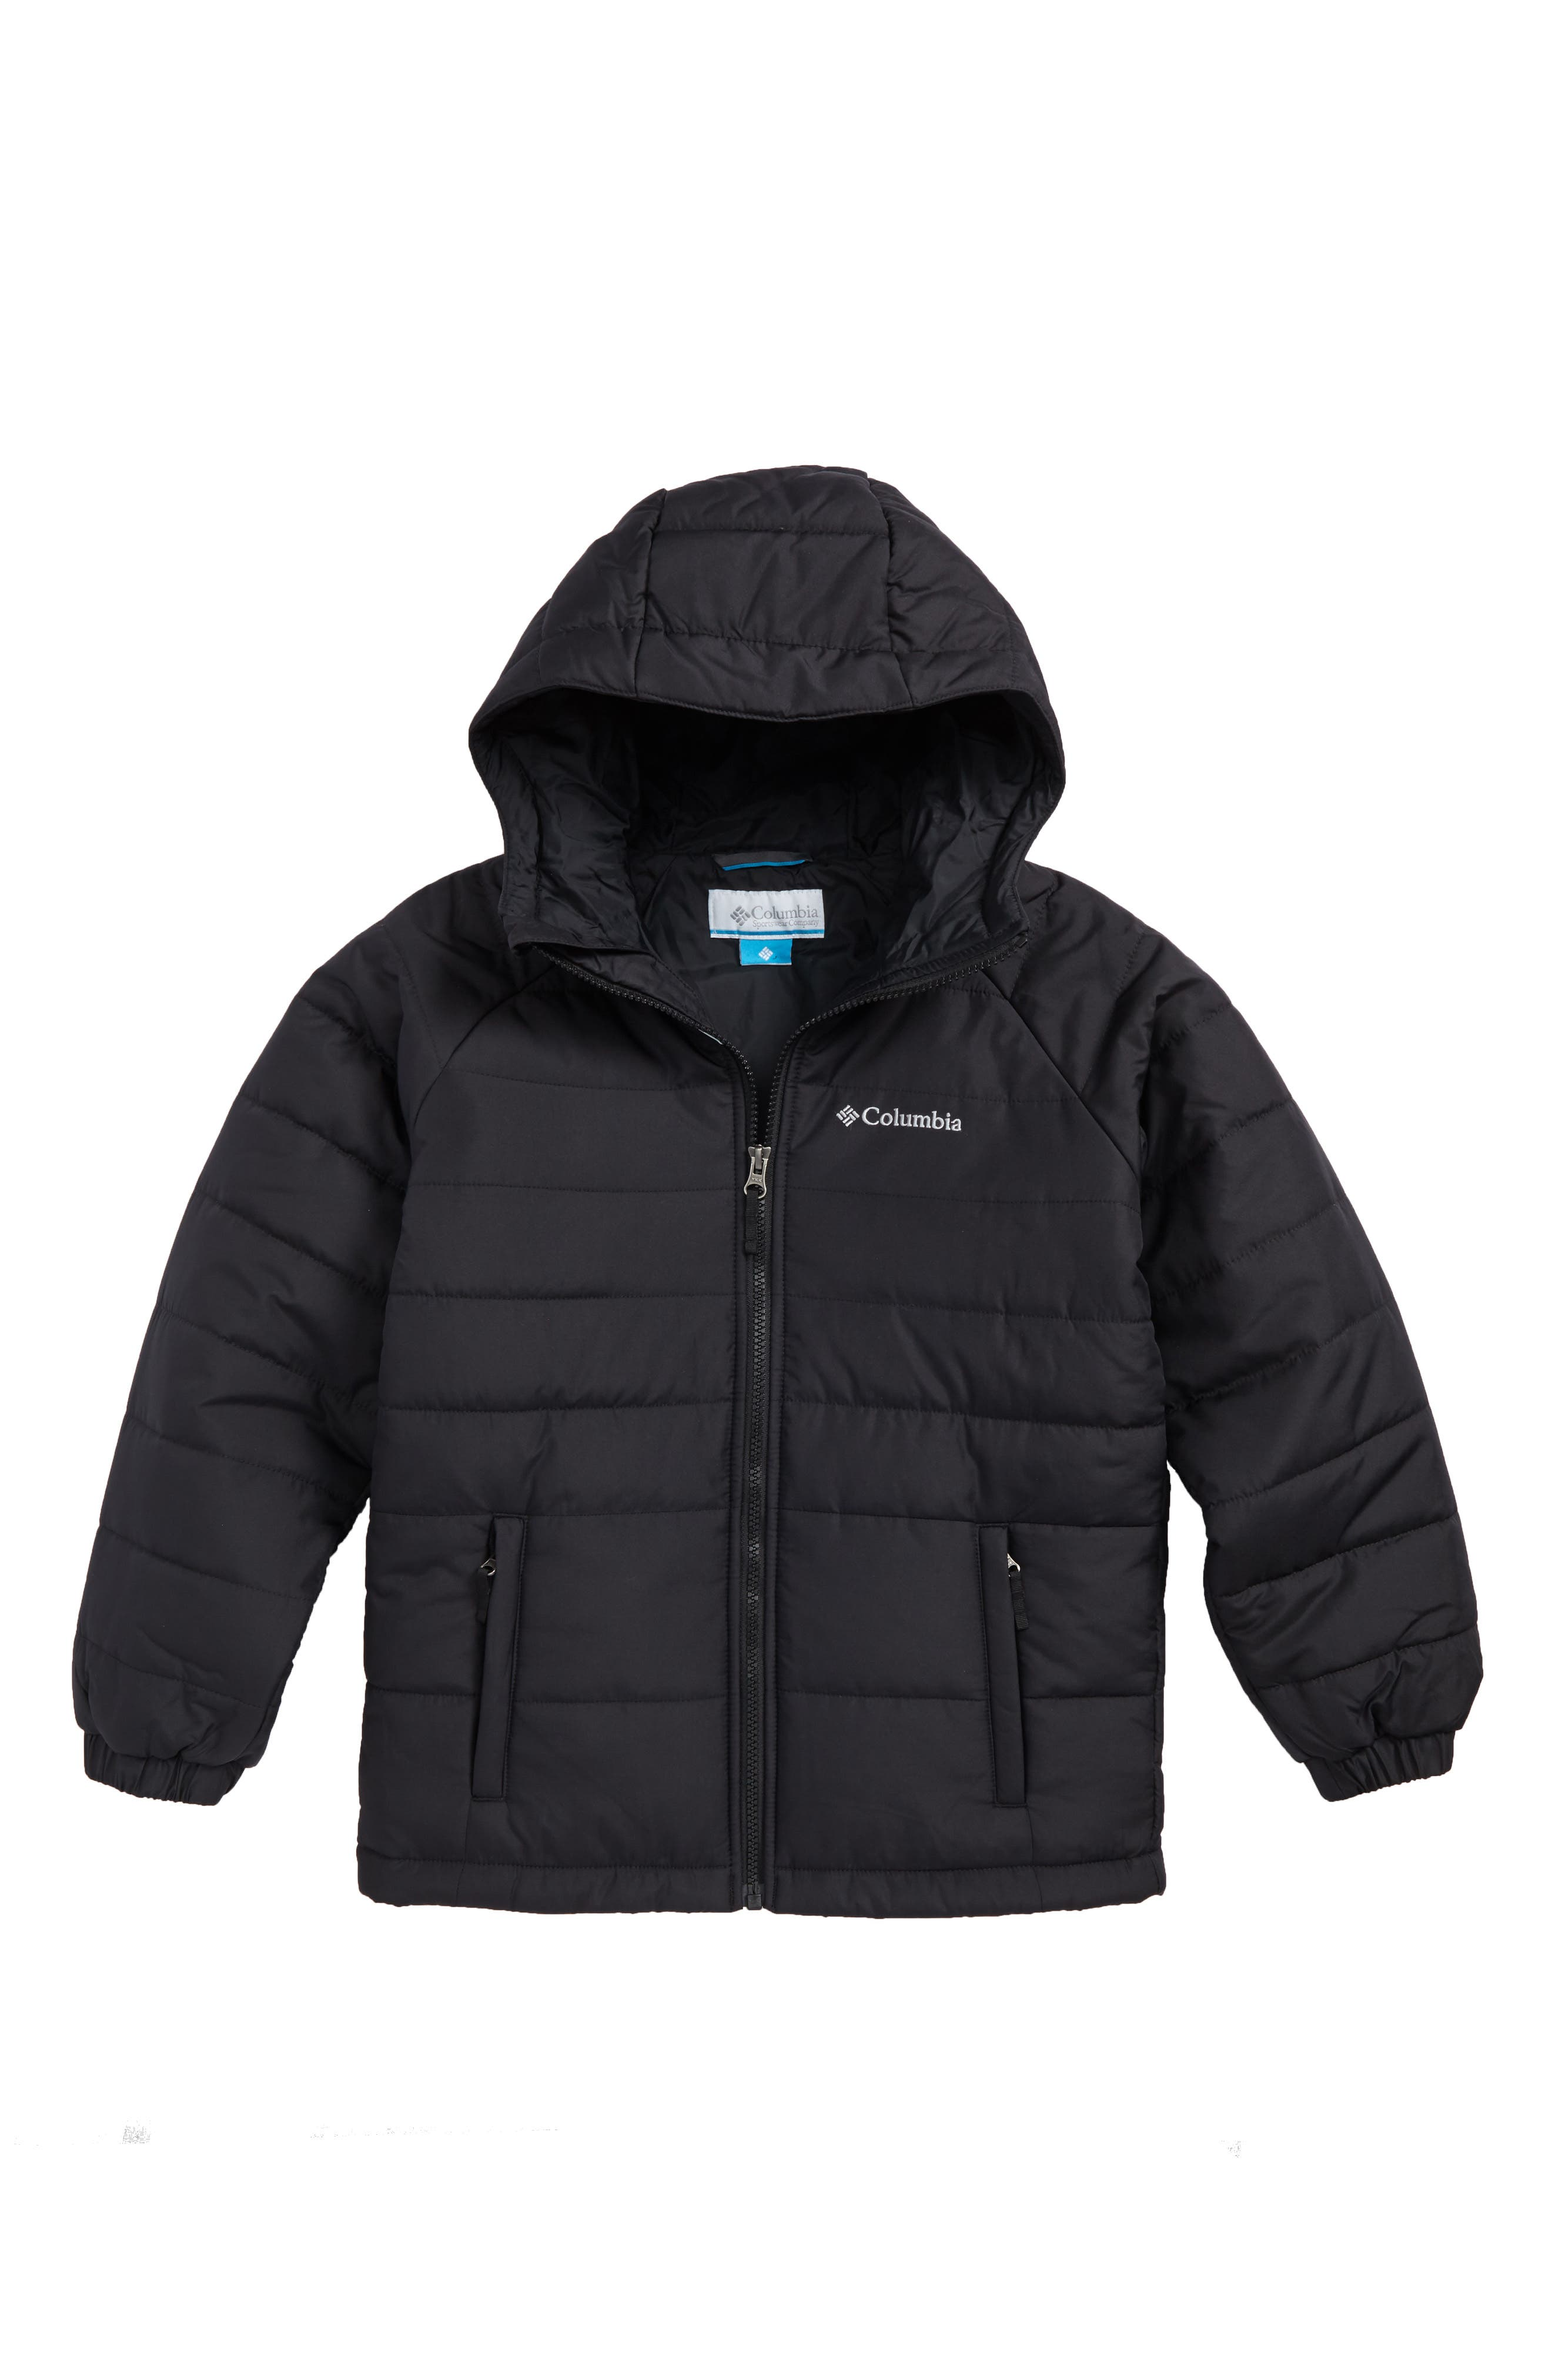 Alternate Image 1 Selected - Columbia Tree Time Water Resistant Puffer Jacket (Little Boys & Big Boys)